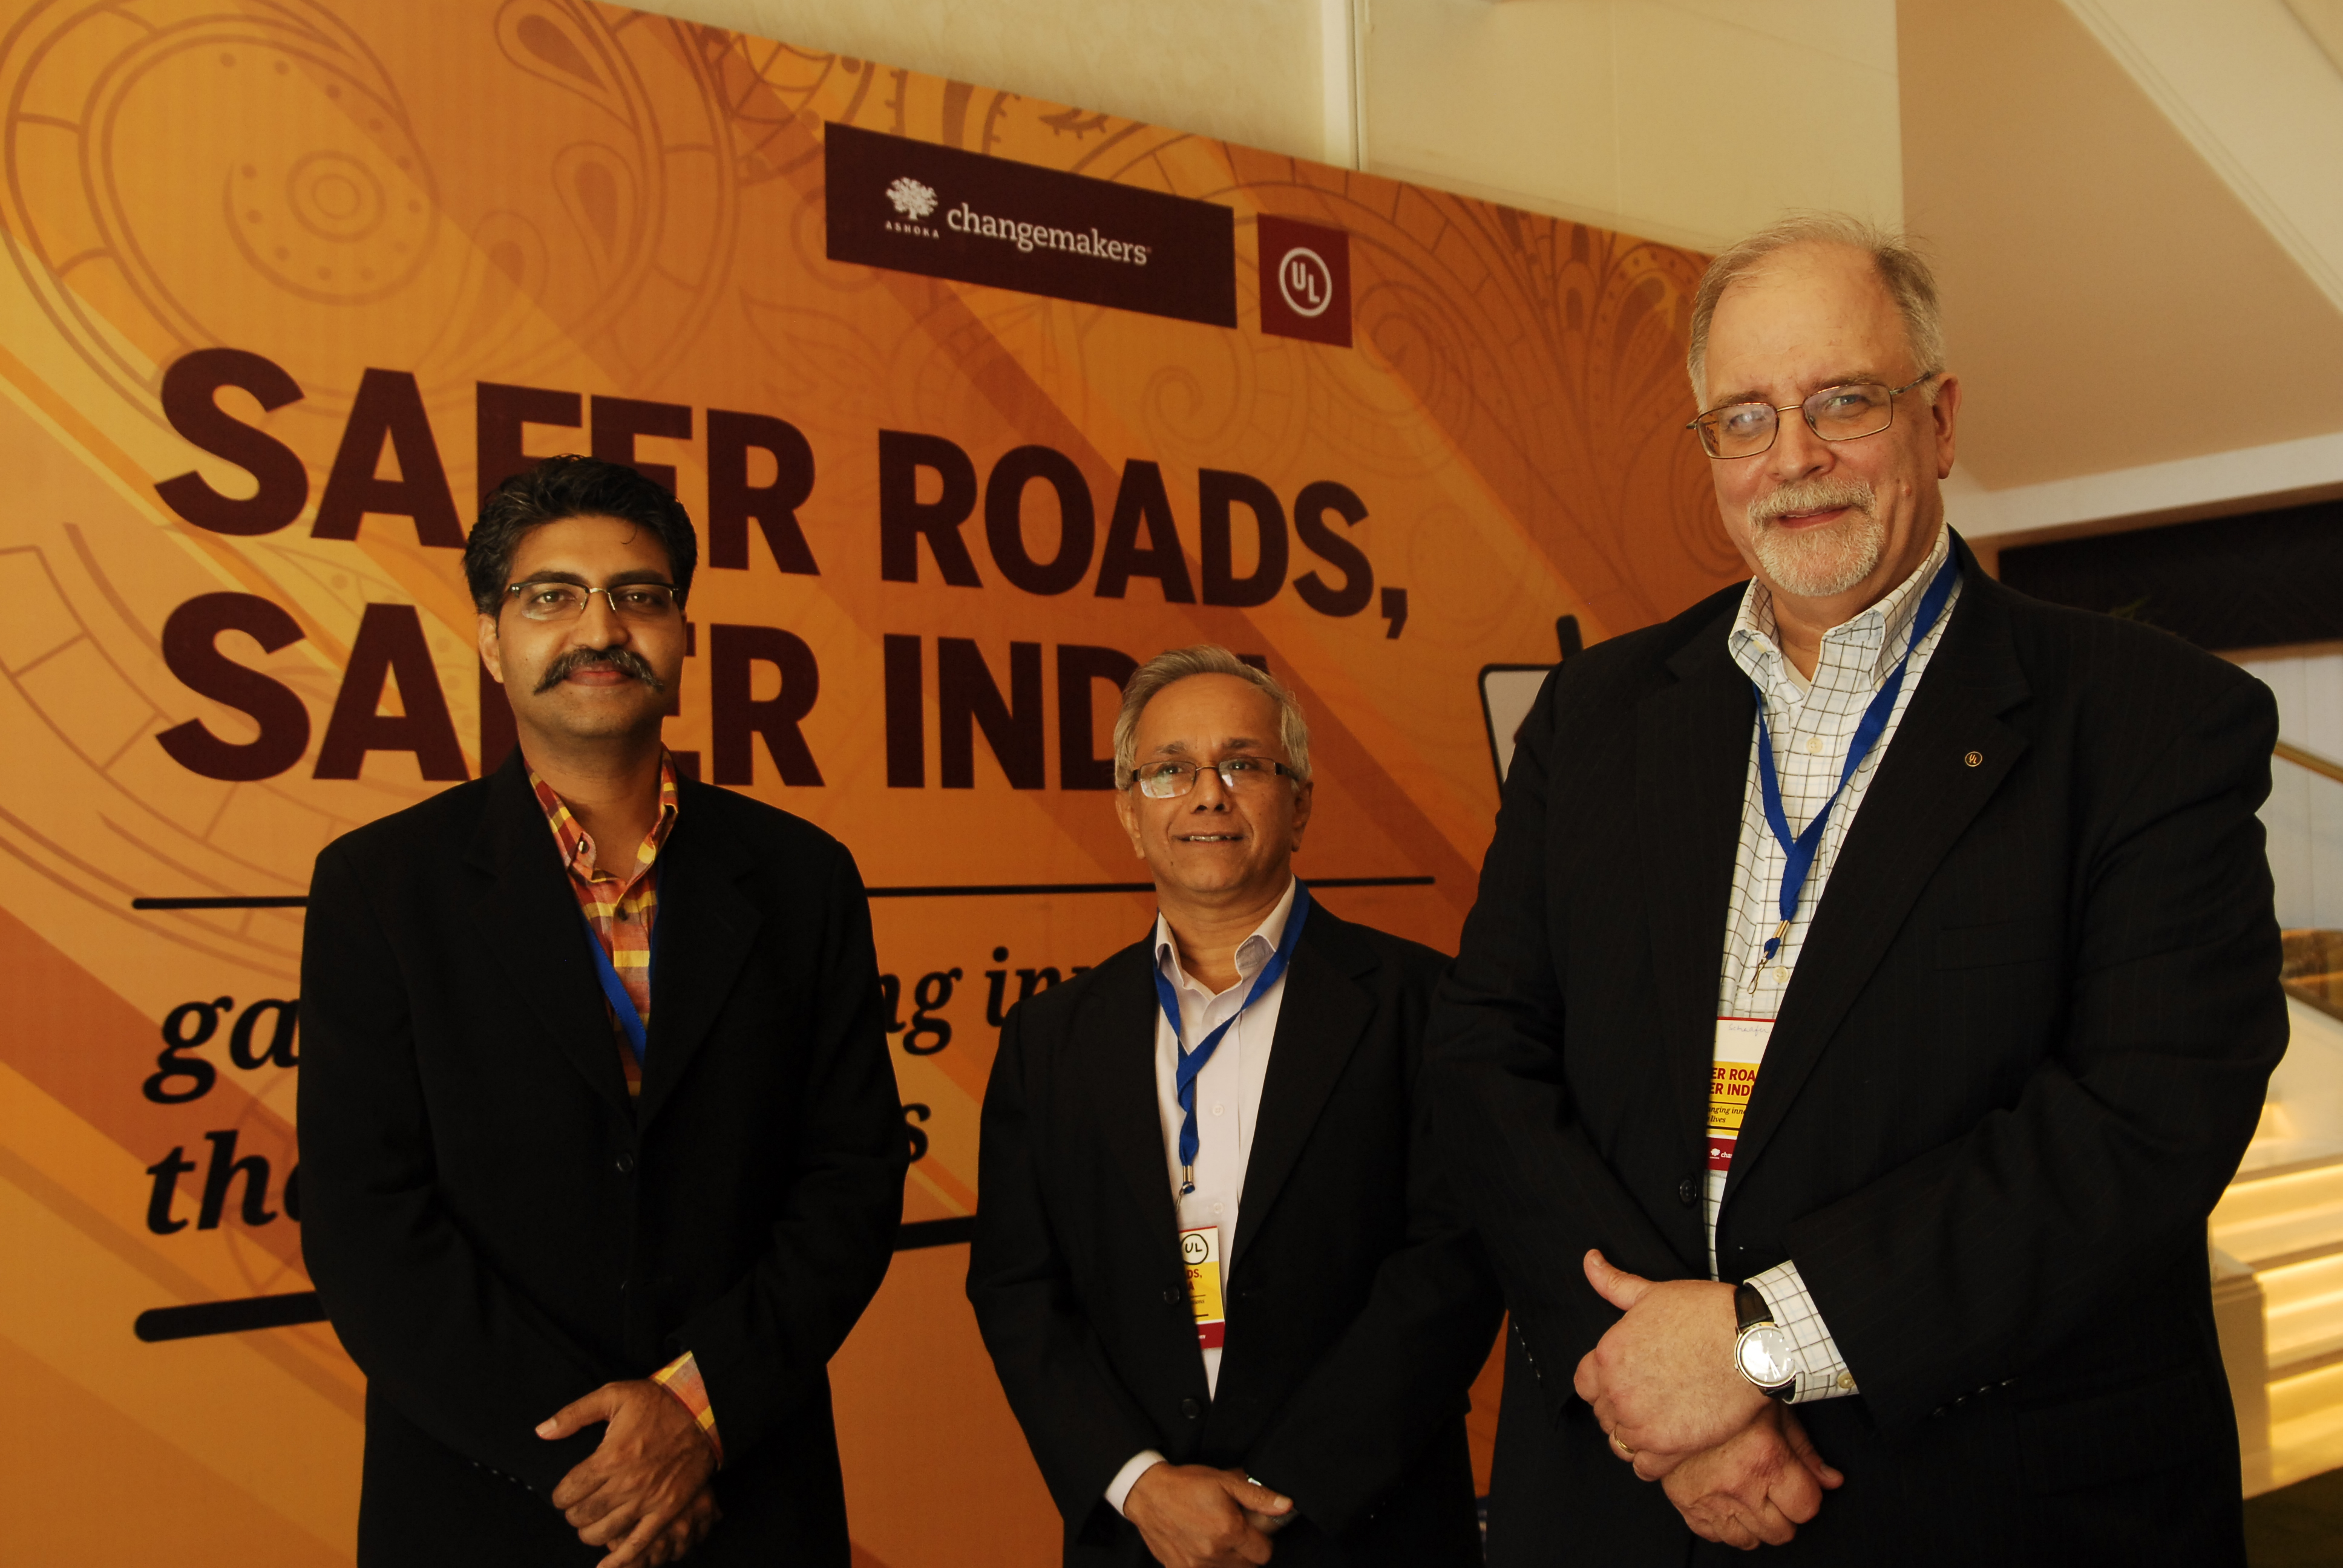 """(From L-R) Mr. Sunish Jauhari, Institutional strategist, Ashoka, R.A. Venkitachalam, VP, Public Safety Mission, UL and Gus Schaeffer, SVP, Public Safety Mission, UL at the launch of """" Safer Roads, Safer India Nationwide Campaign"""" led by UL and Ashoka Foundation in Bangalore."""